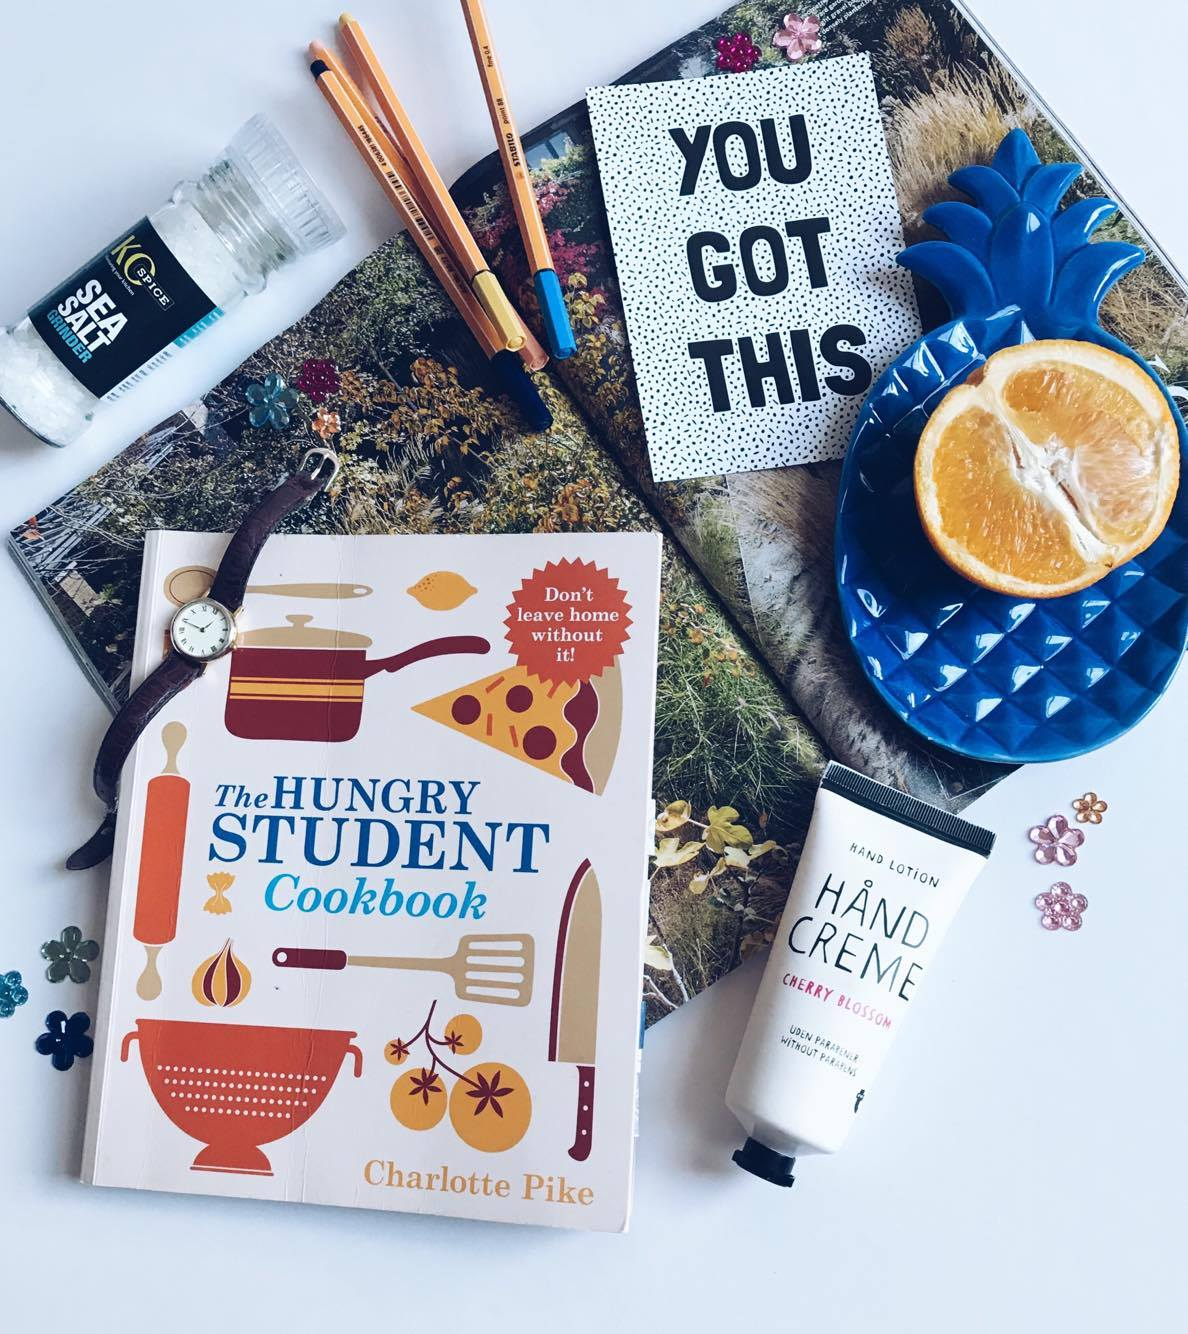 Two Recipes To Try From The Hungry Student